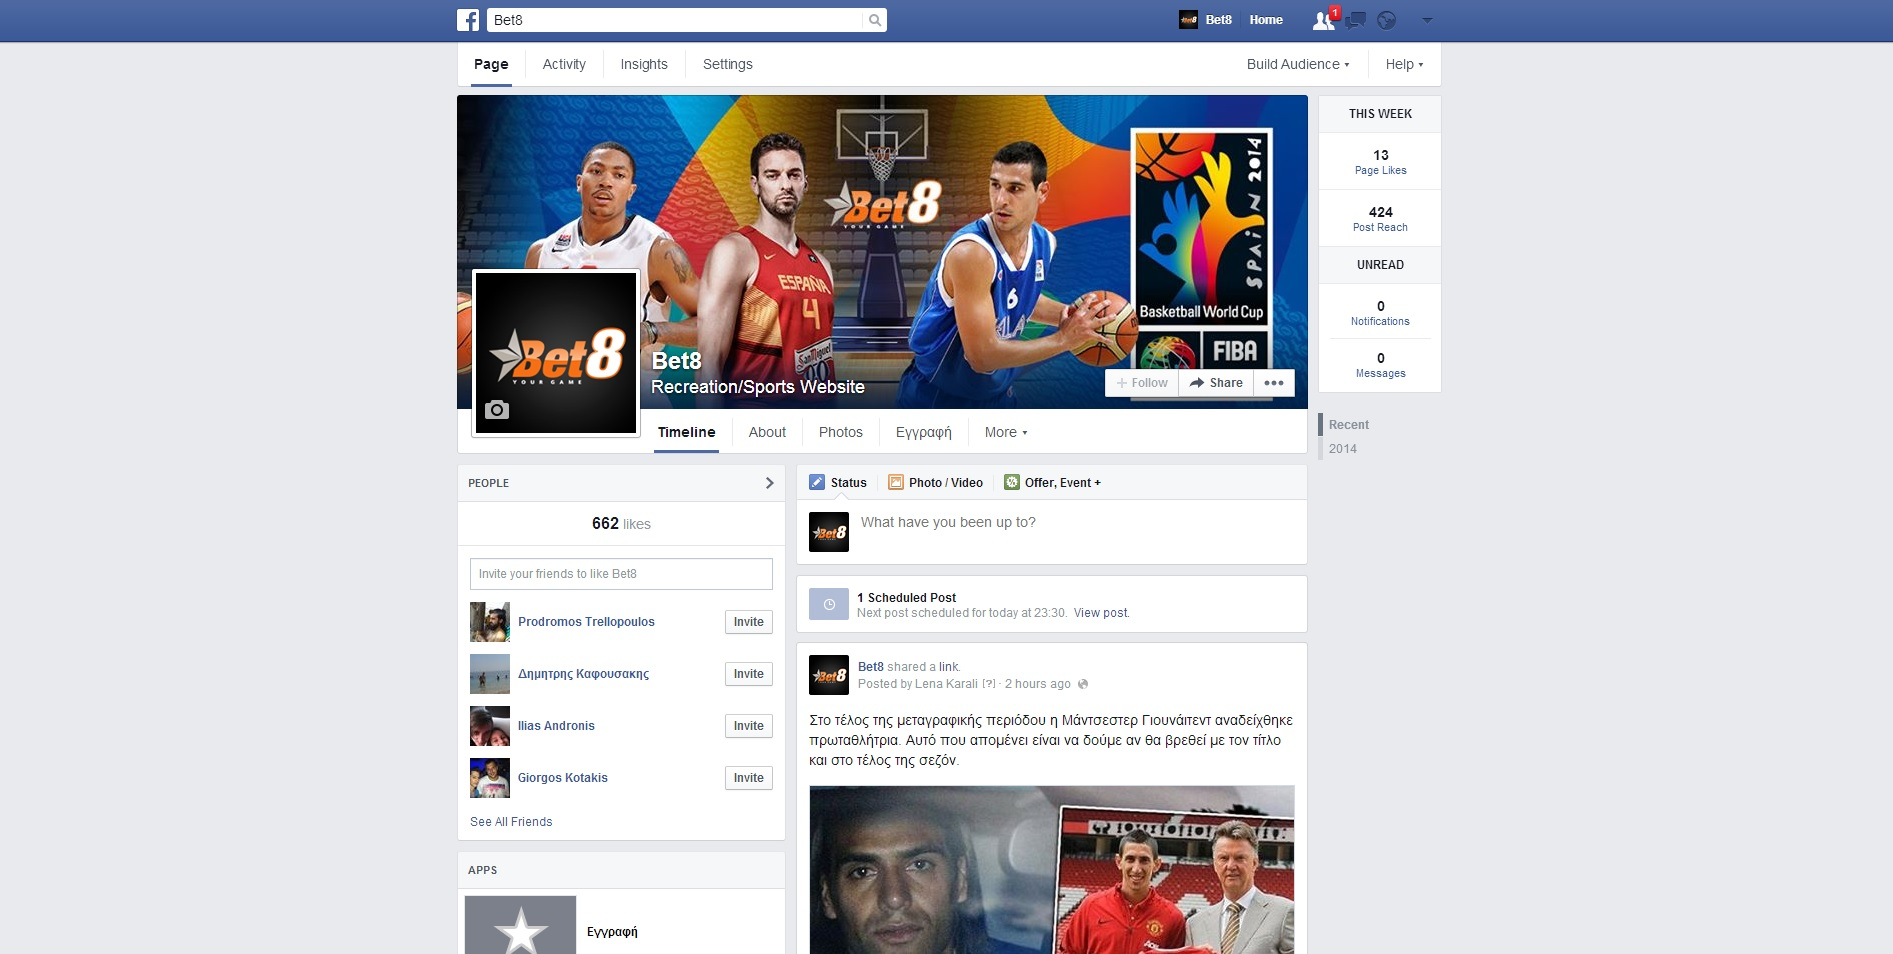 Bet8 Facebook Page